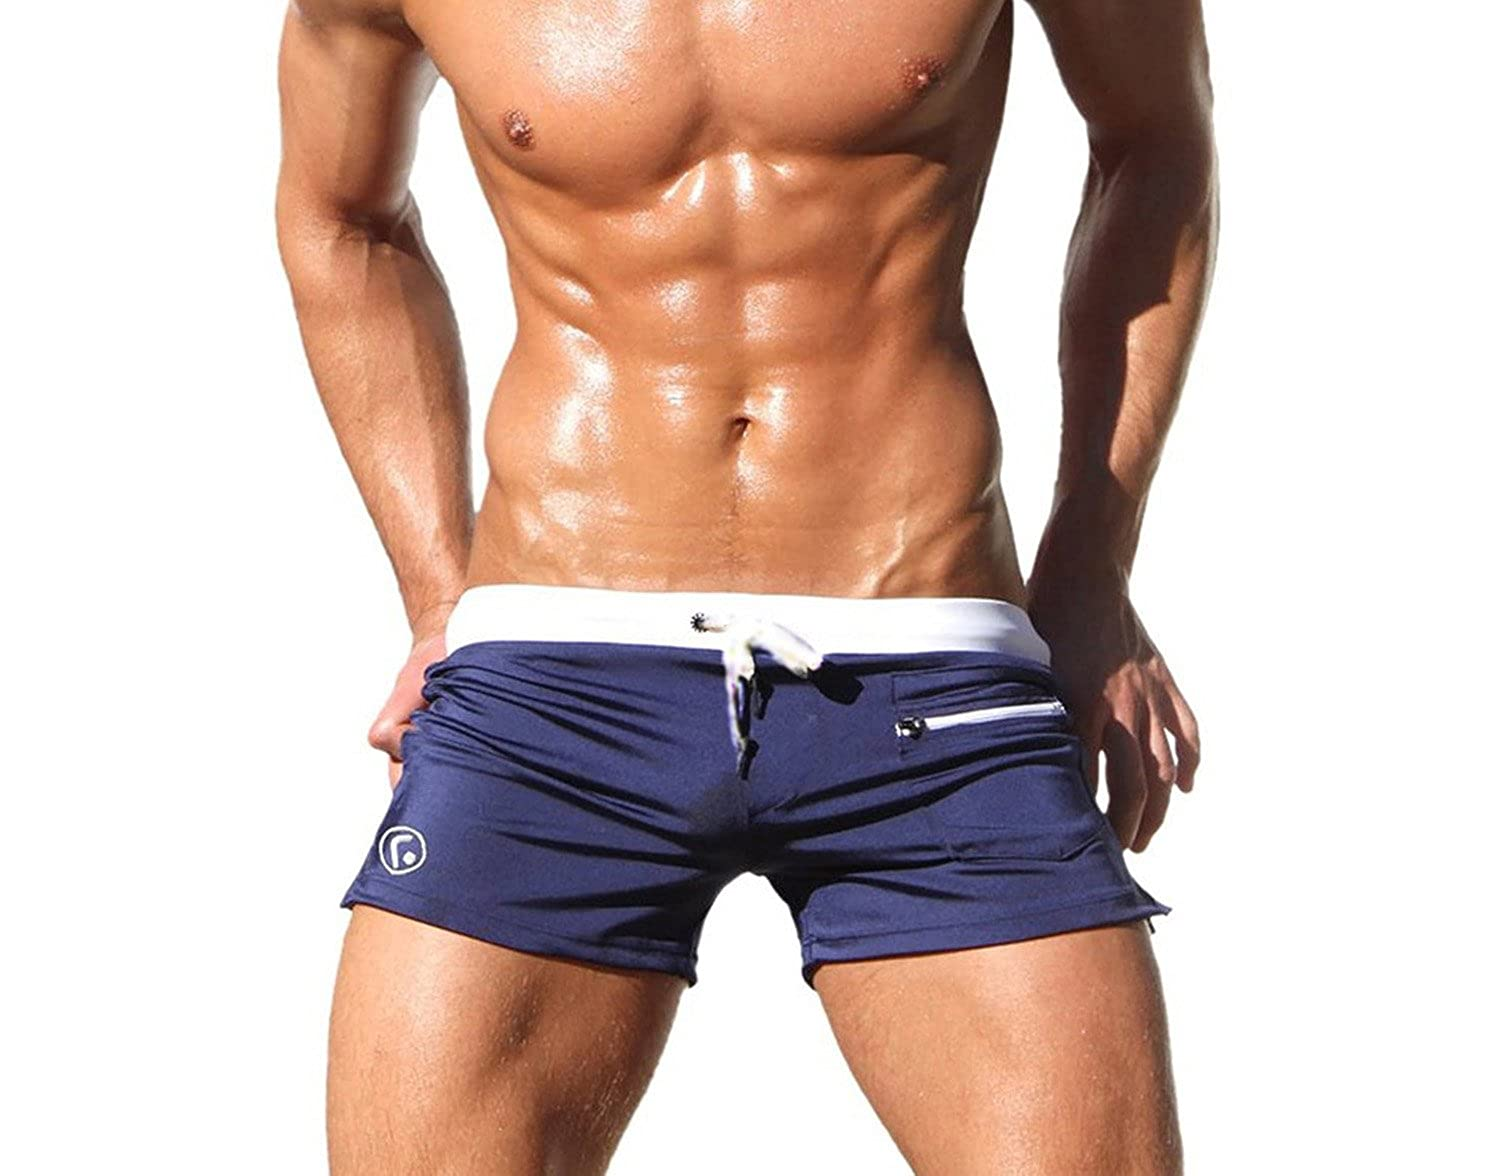 Long shorts have been popular for the last couple of decades, but shorter trunks (though not this short!) are coming back into style. Contemporary swimsuits can serve both decorative and practical functions; most strive for both.